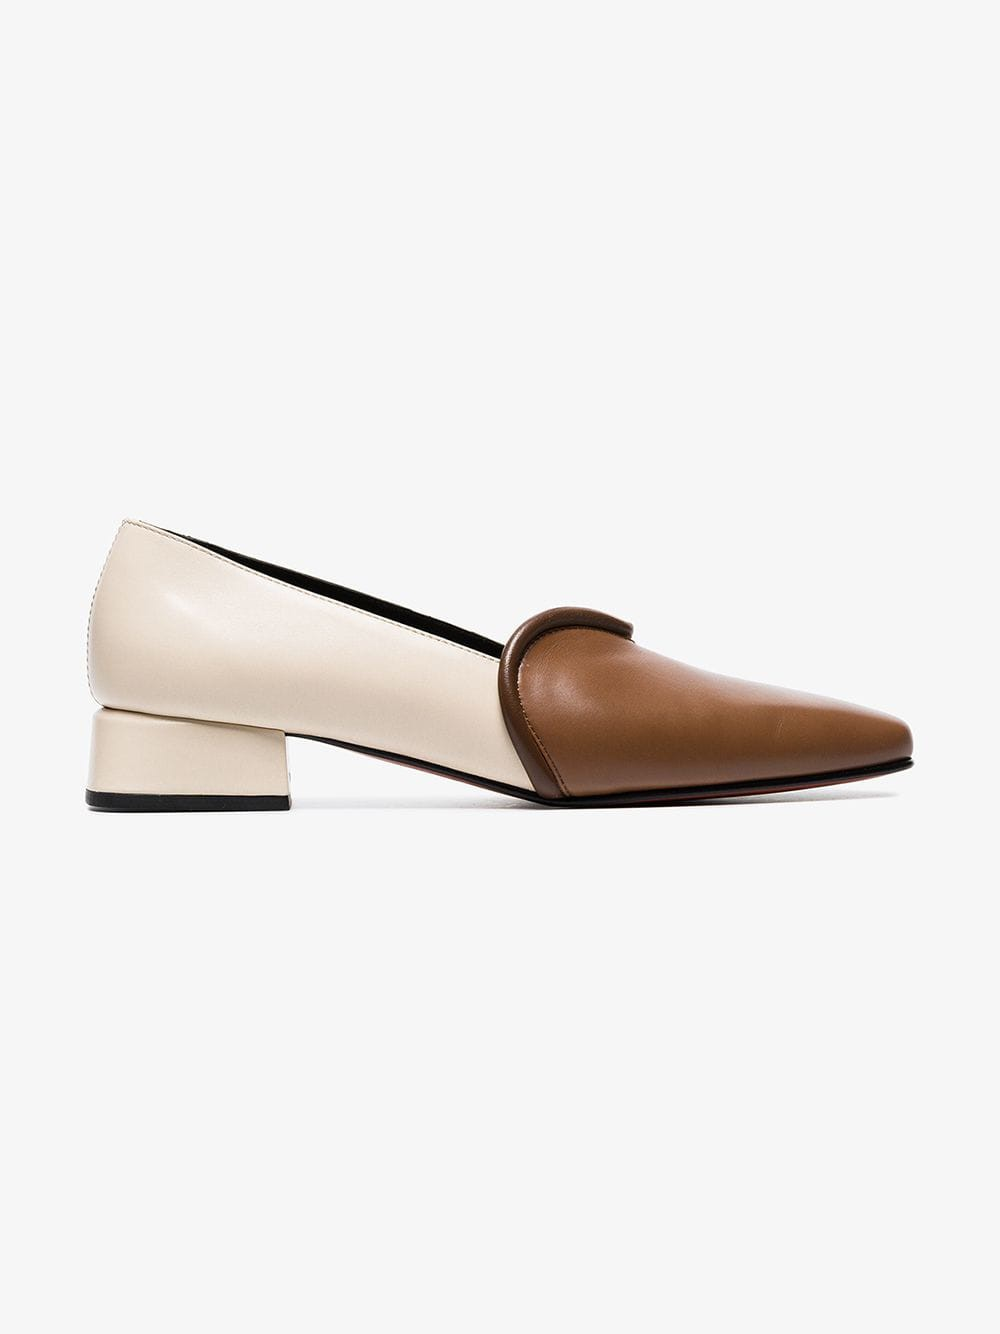 Boyy two-tone leather loafers in brown